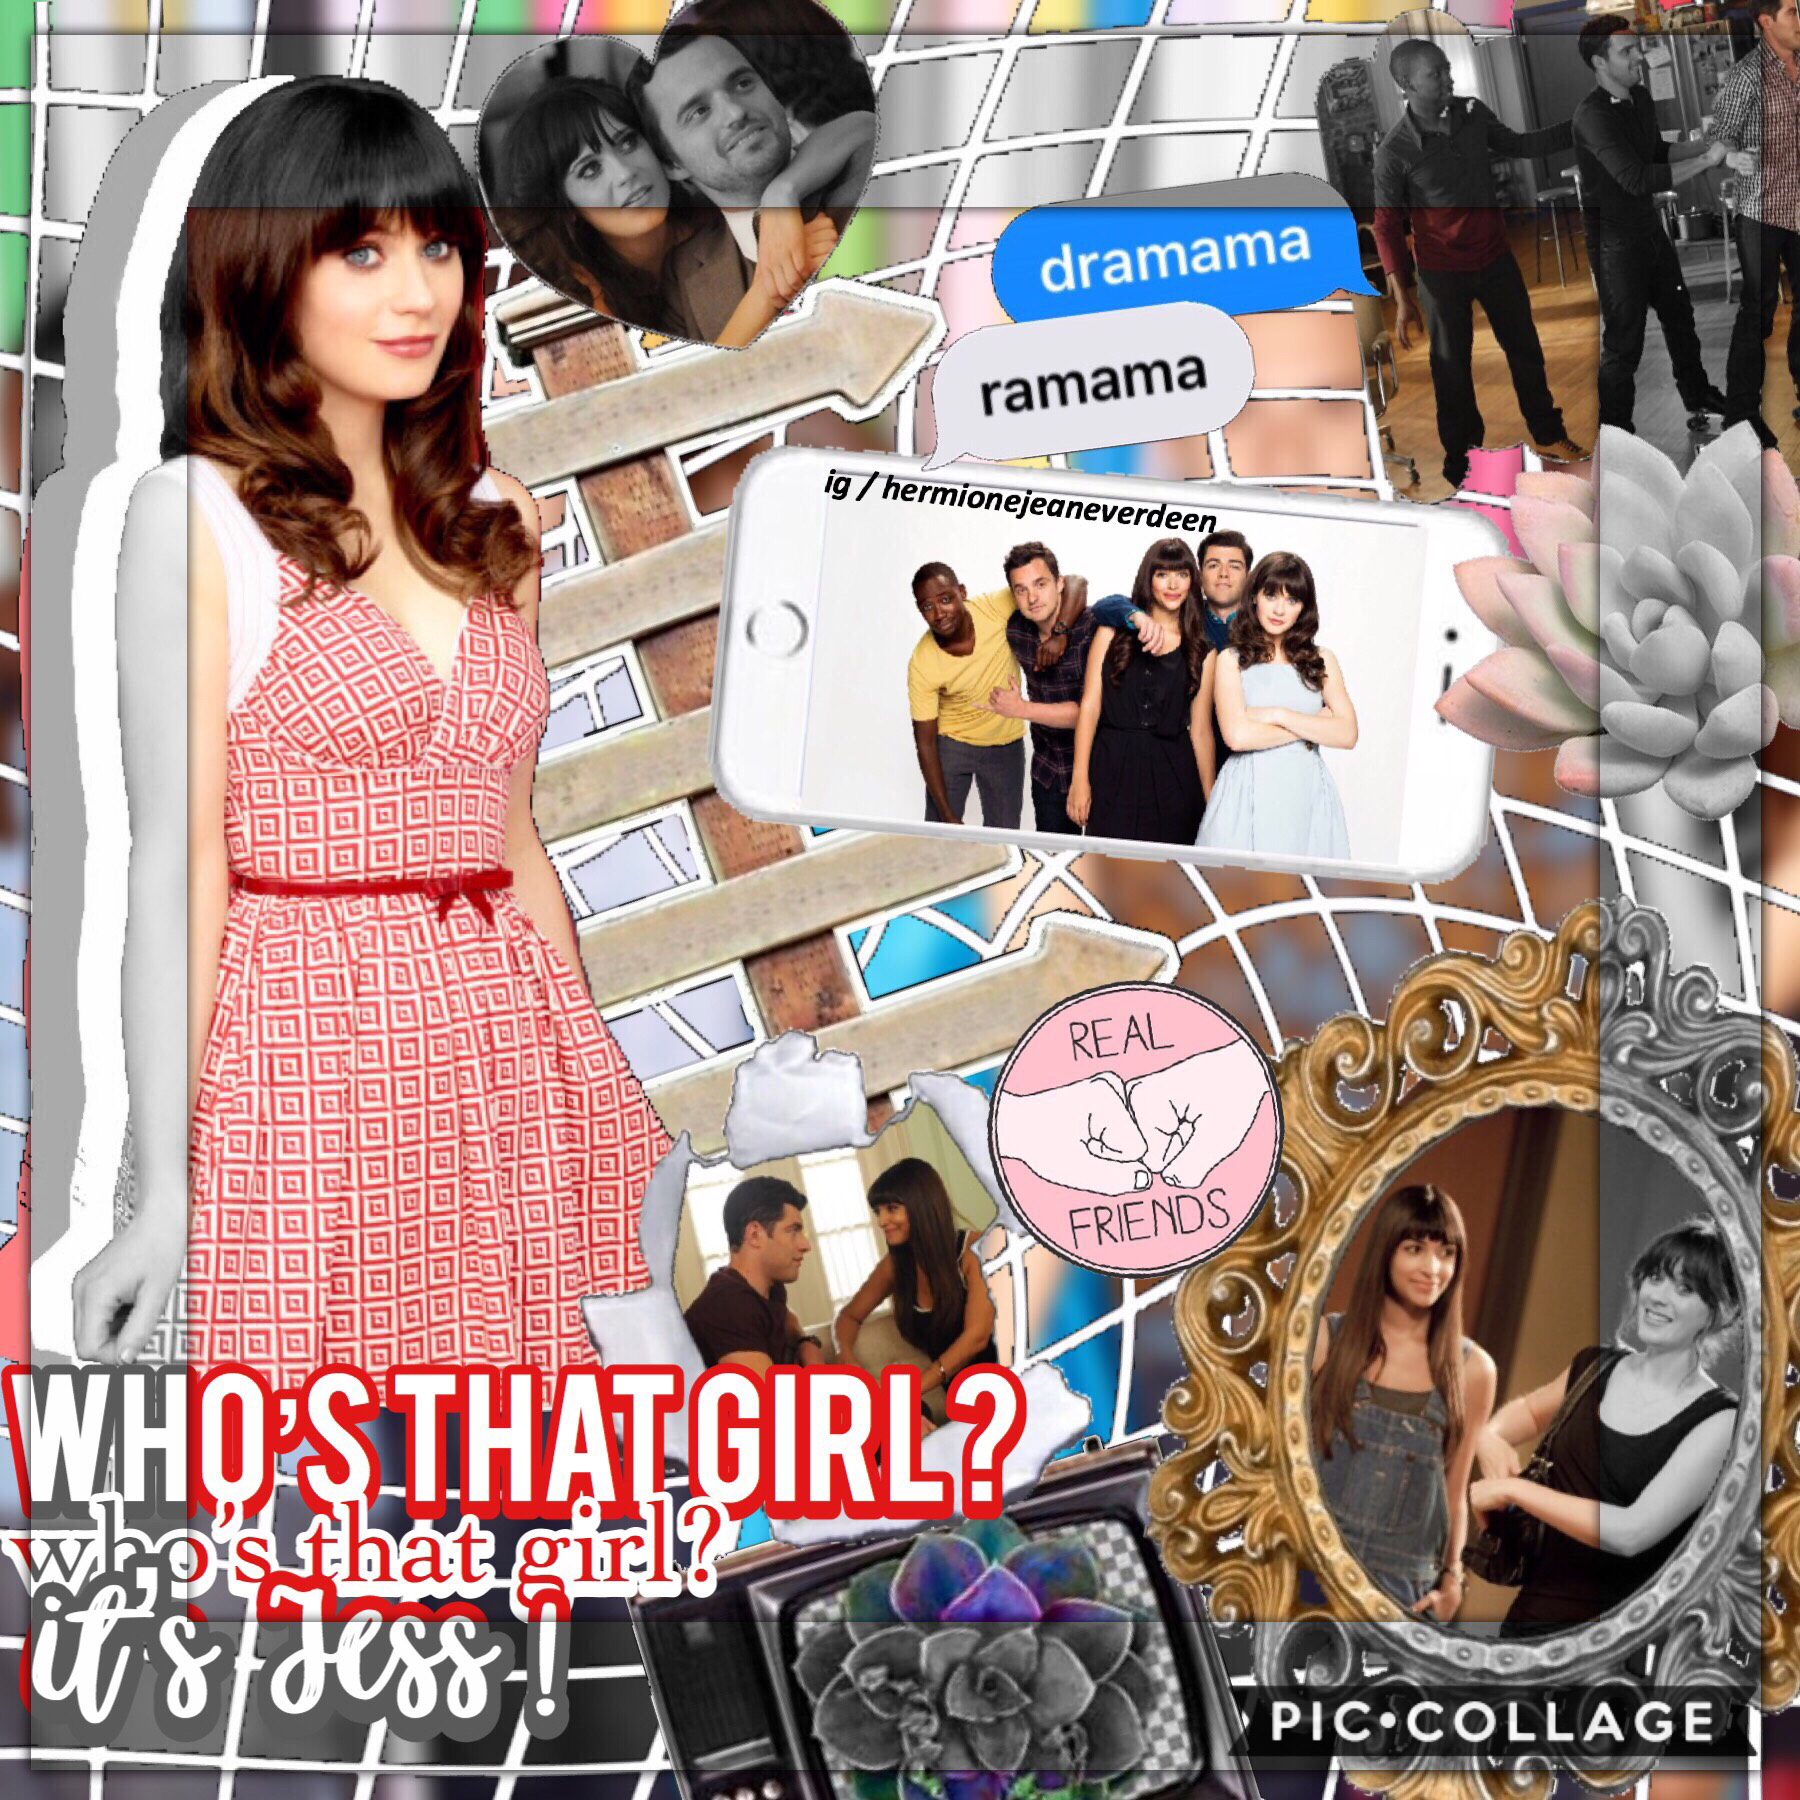 tap my first New Girl edit! New Girl is a really funny show with a great storyline, I highly recommend it! there are 6 seasons on Netflix and the second half of the 6th season is airing soon(I think)